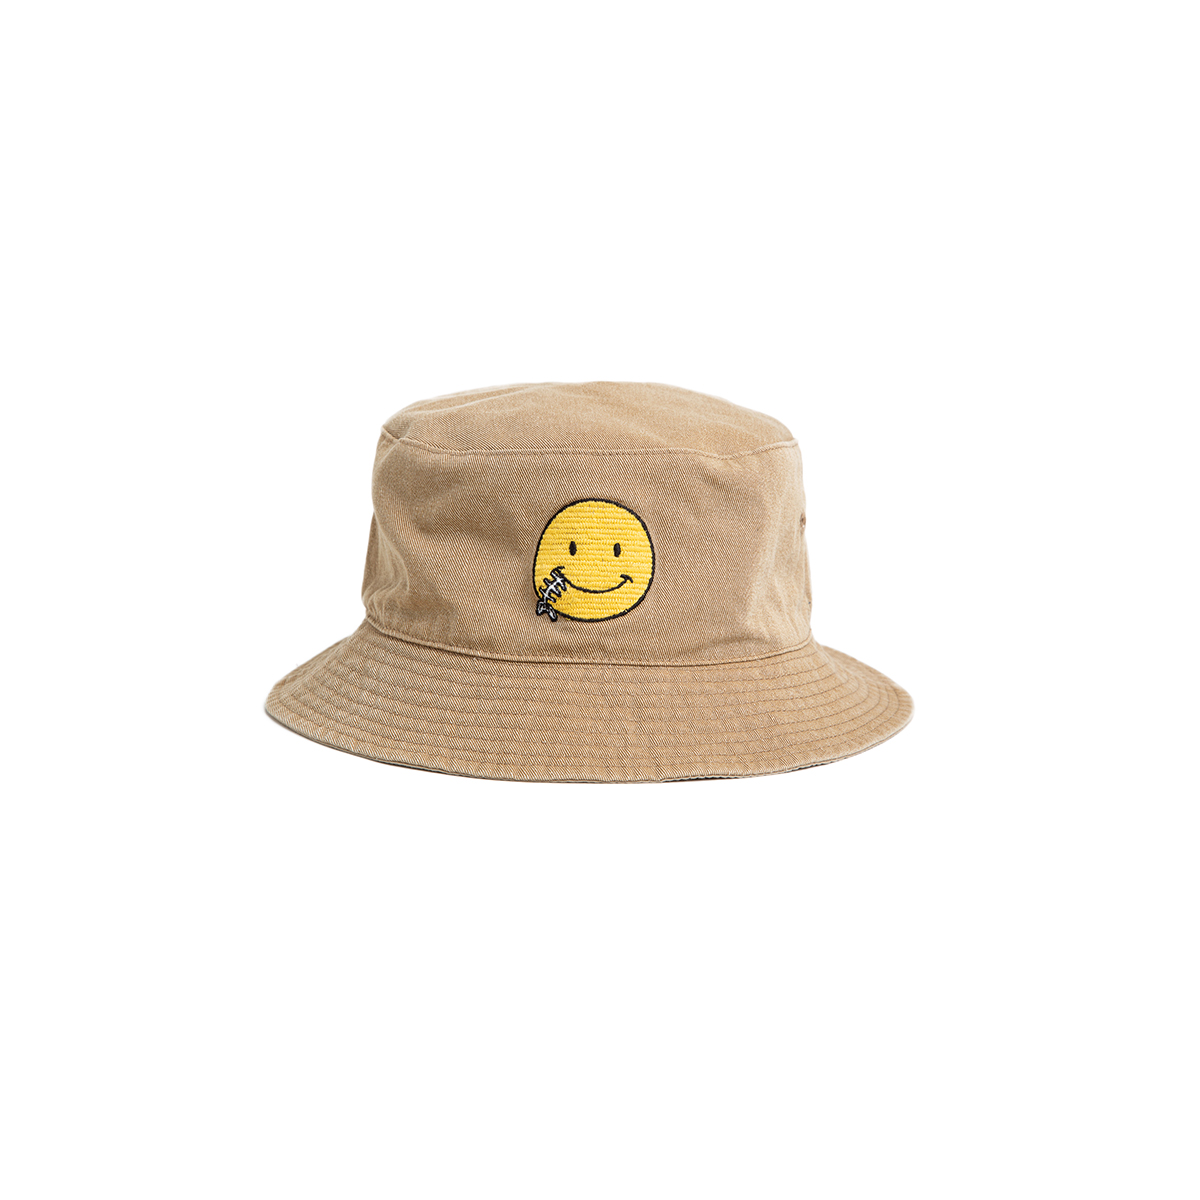 "Reversible Needle Bucket_SMILE ""SAND BEIGE"" 자수가 촘촘히 들어간 버킷"